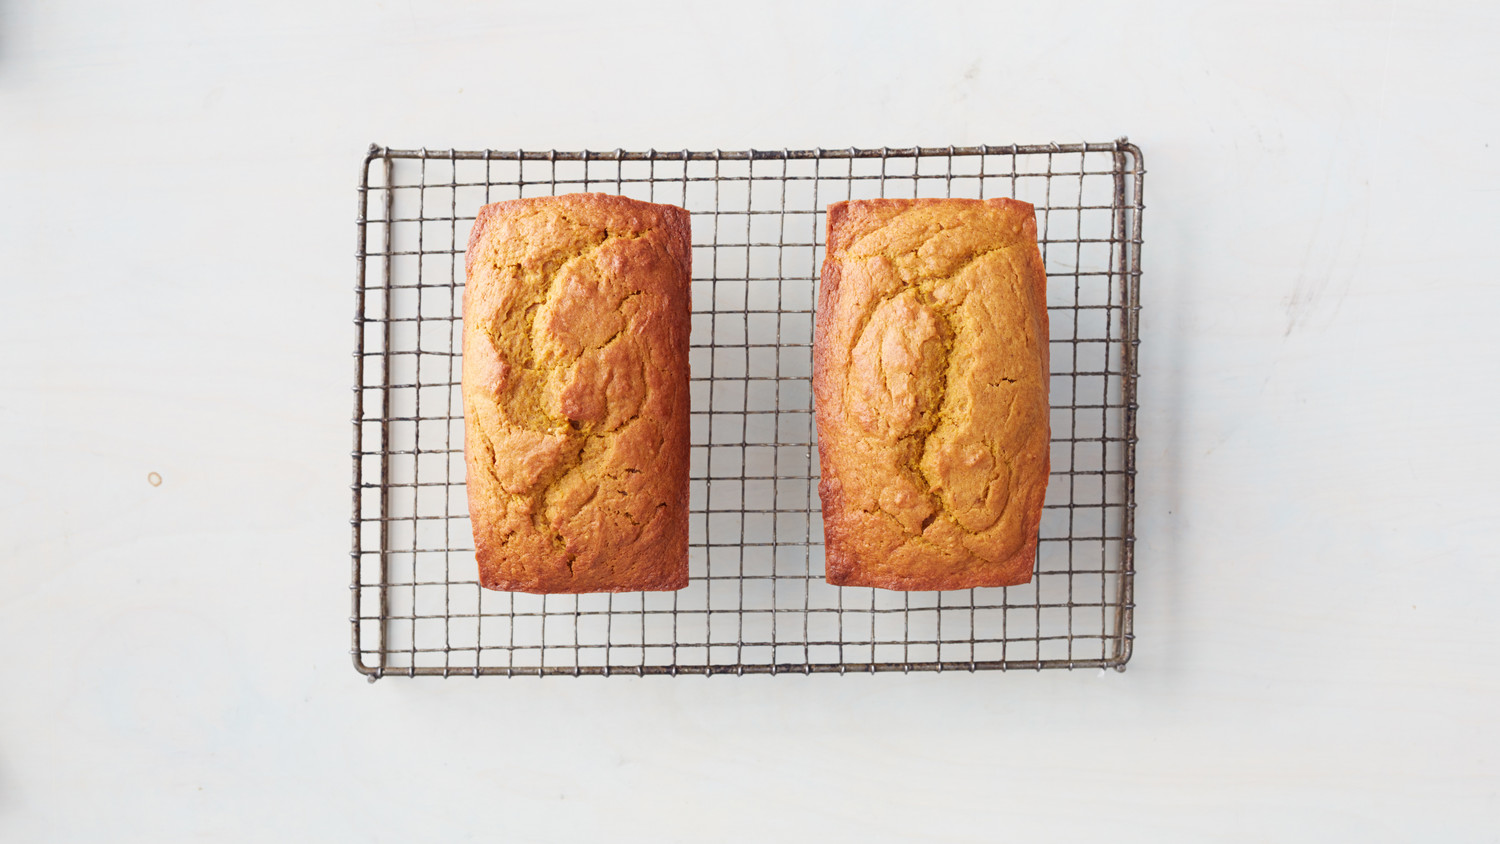 Follow These Five Tips for Your Best Pumpkin Bread Ever